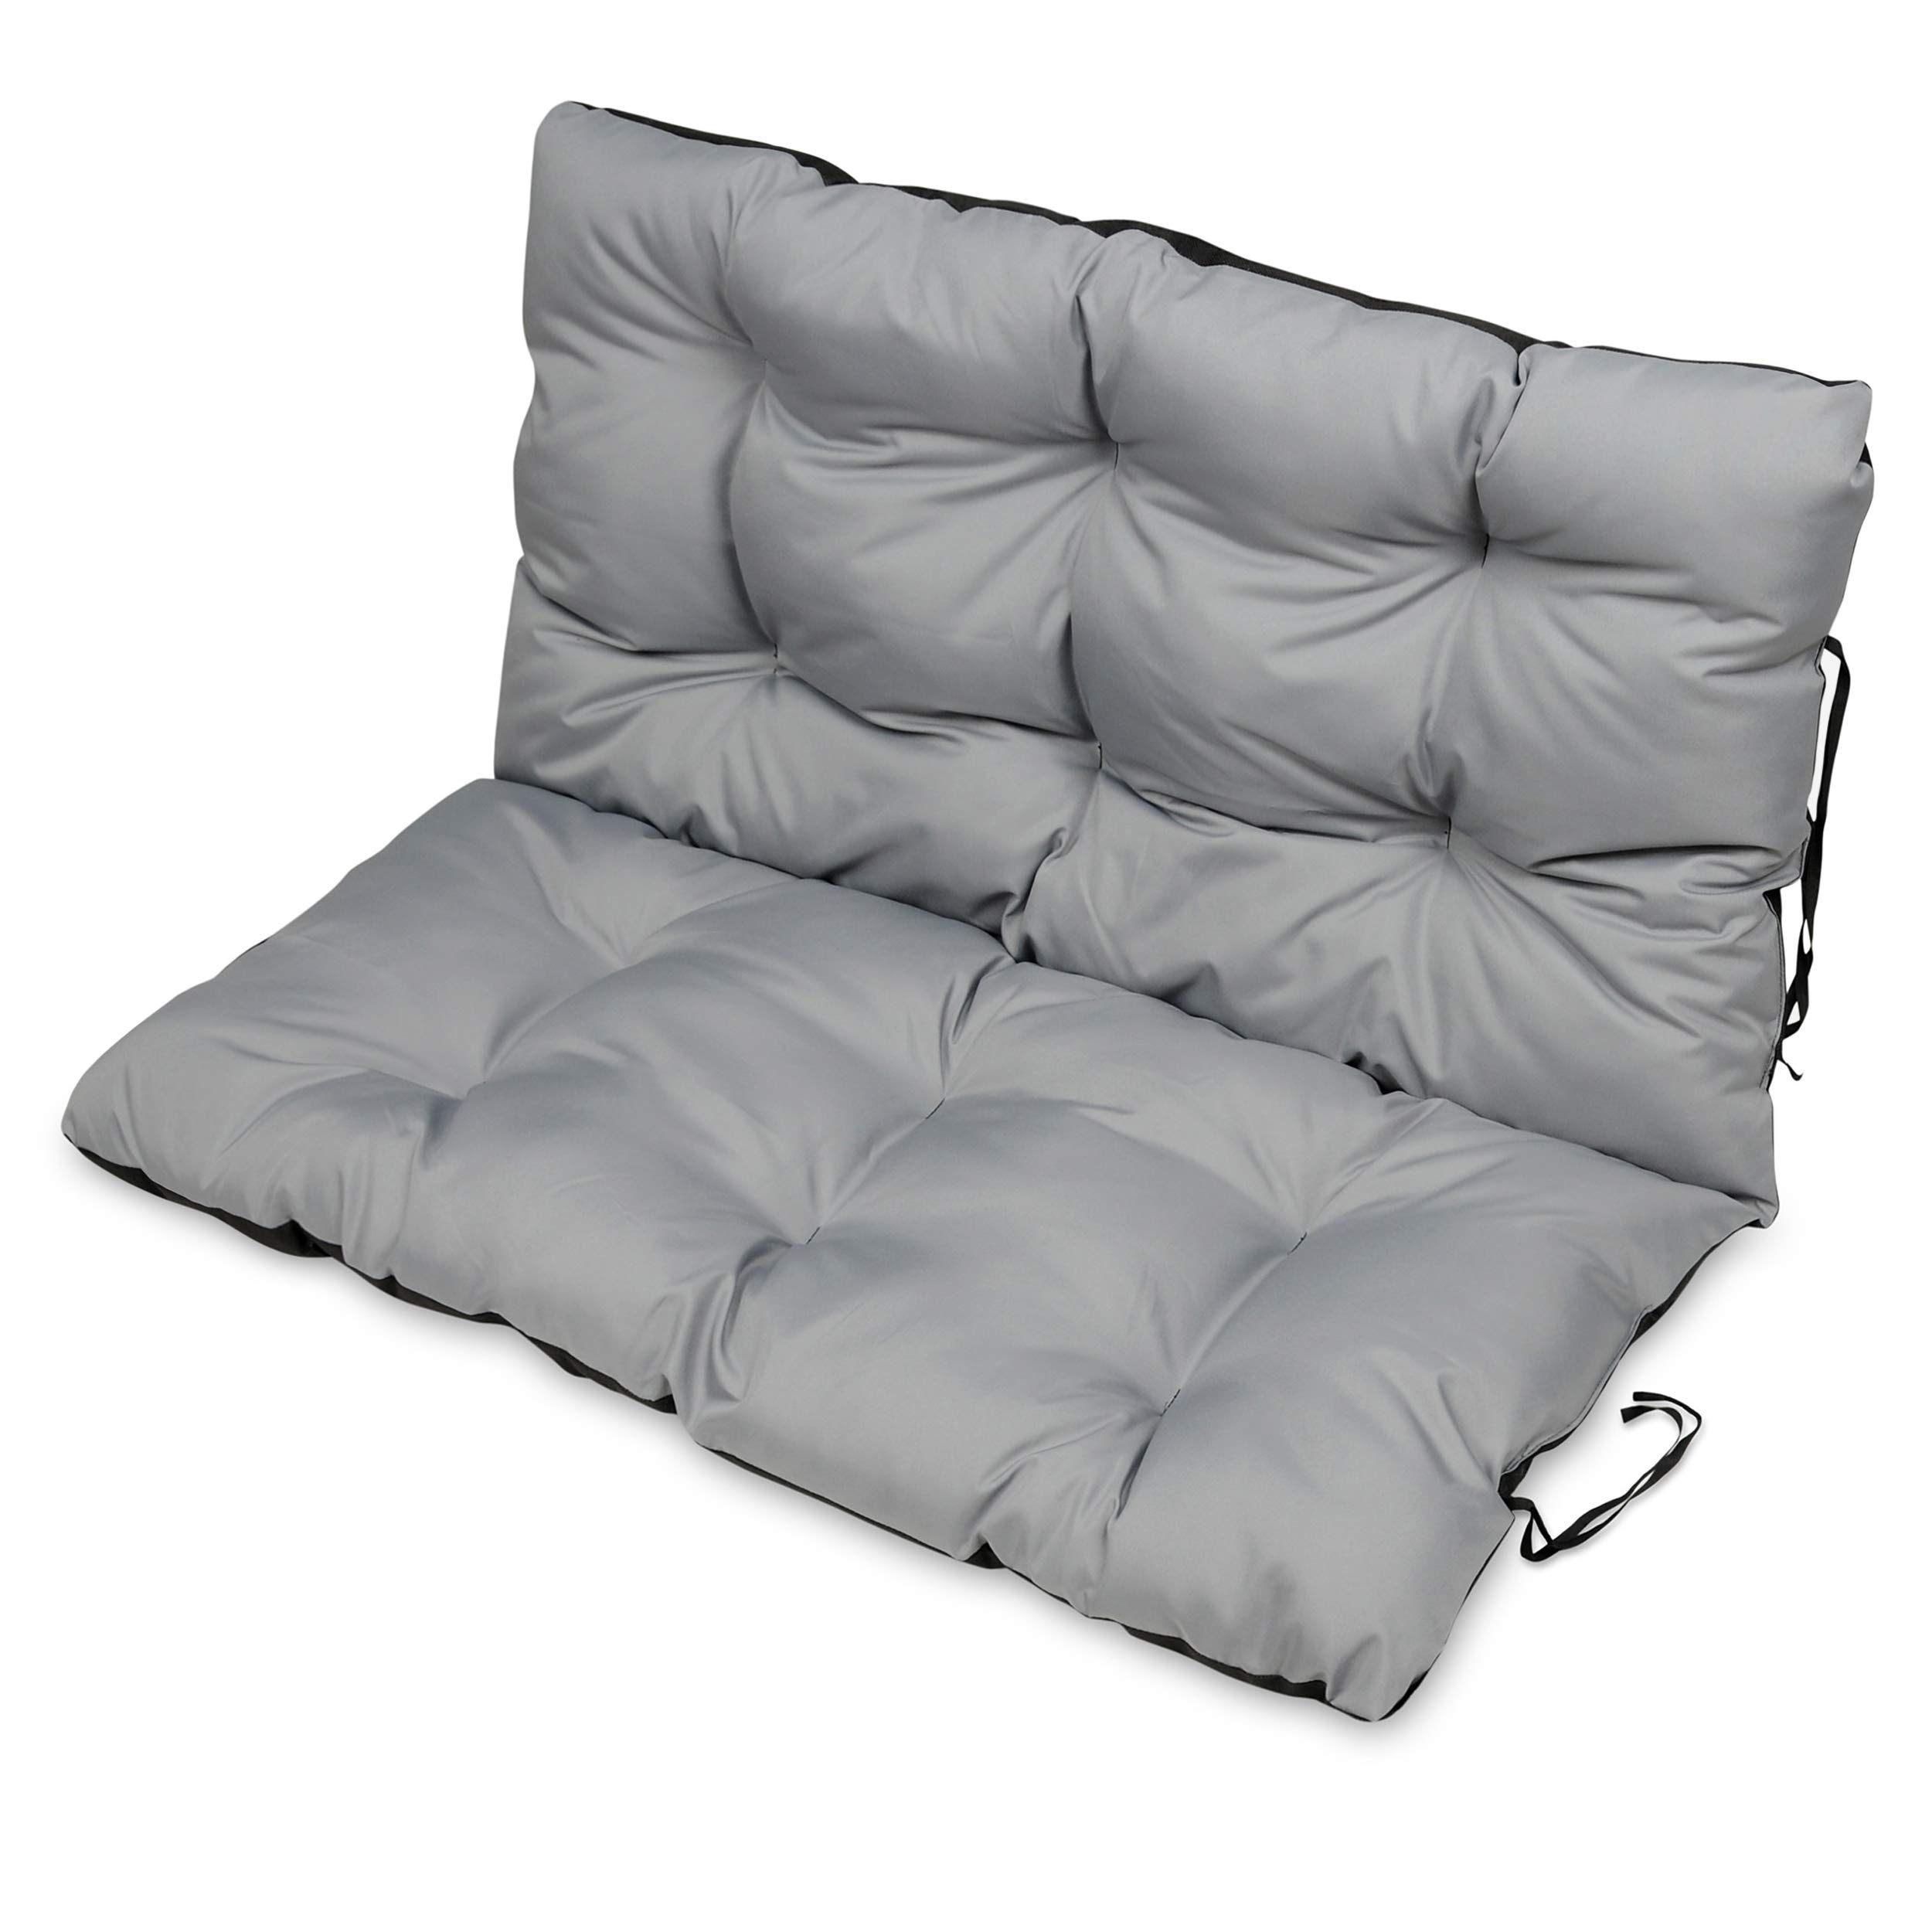 SuperKissen24. Large Garden Bench Seat Cushion Seat Pad - 120x50 and 120x60 cm back - Seat cover for Garden Swing or Garden Sofa - Outdoor/Indoor Long Bench Pillow - Waterproof - grey